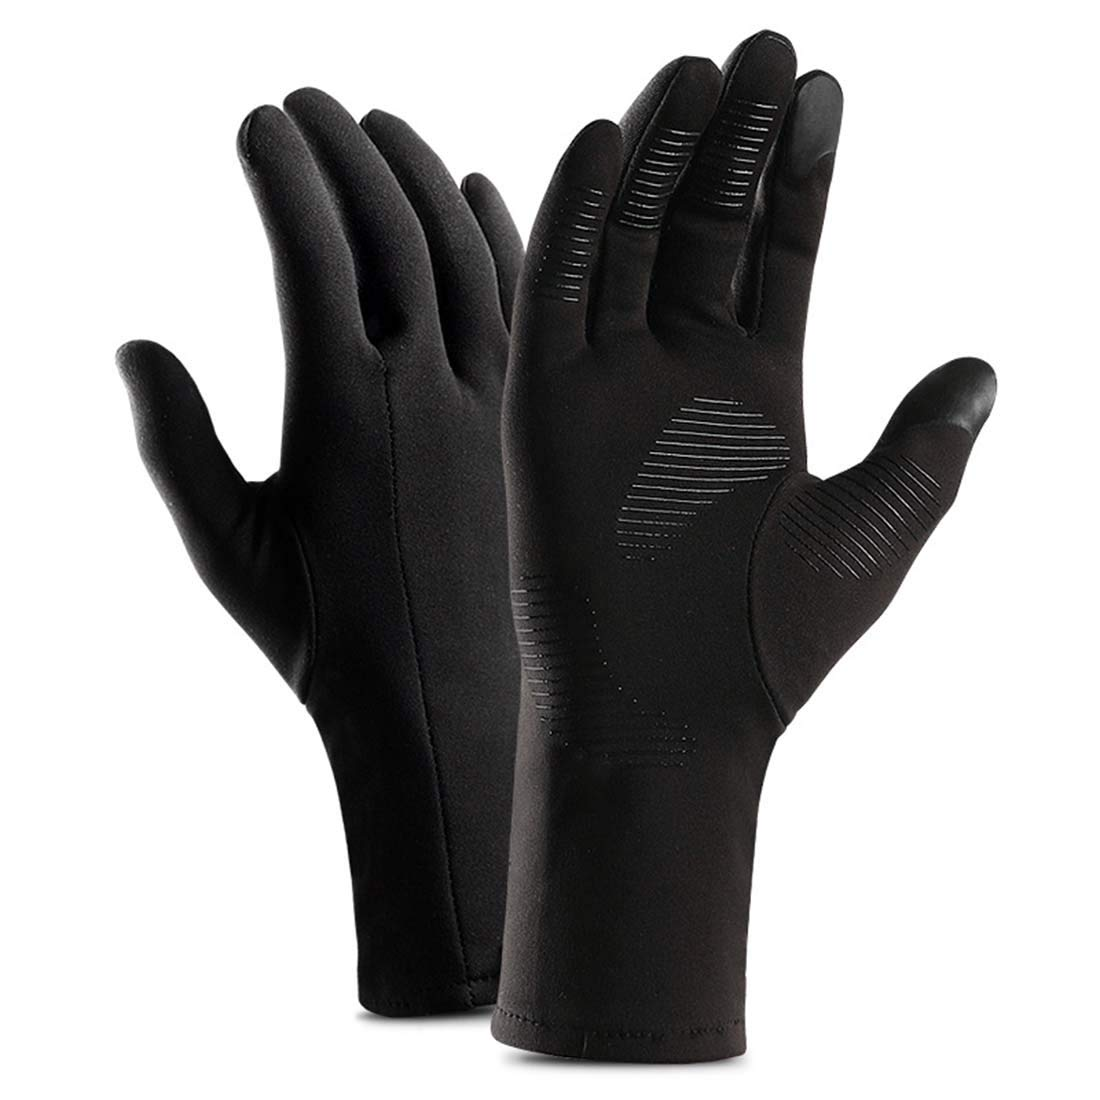 Yingniao Winter Sports Glove Touchscreen Texting Outdoor Cycling Motorcycle Mittens Lining Black(M)